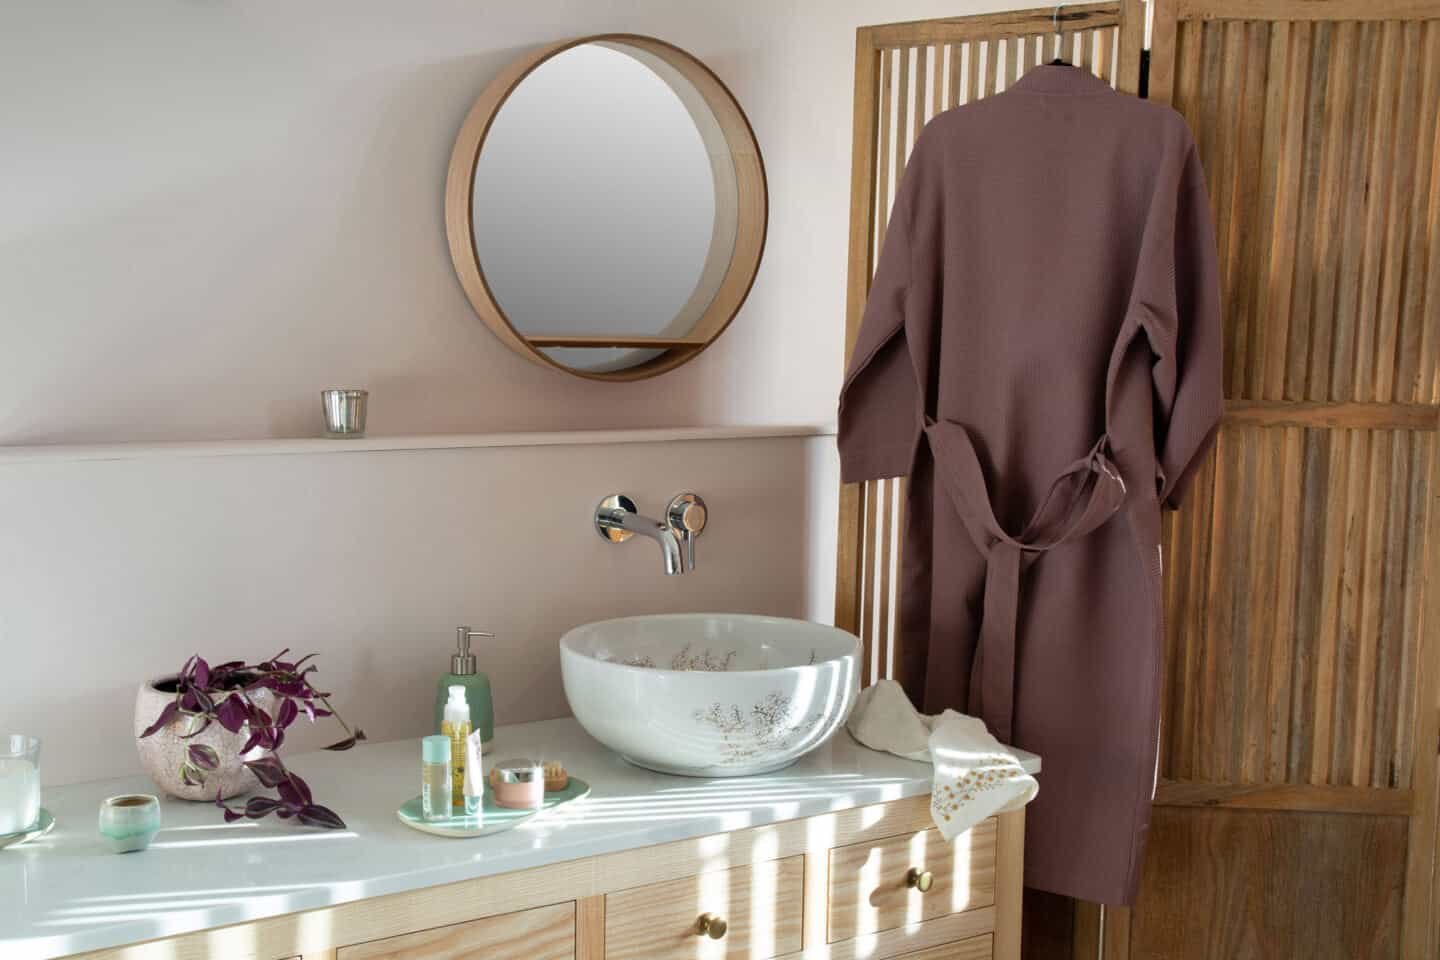 A round white bathroom sink with vanity. The sink is covered in delicate blossom pattern and rests on a countertop in a Japanandi style bathroom